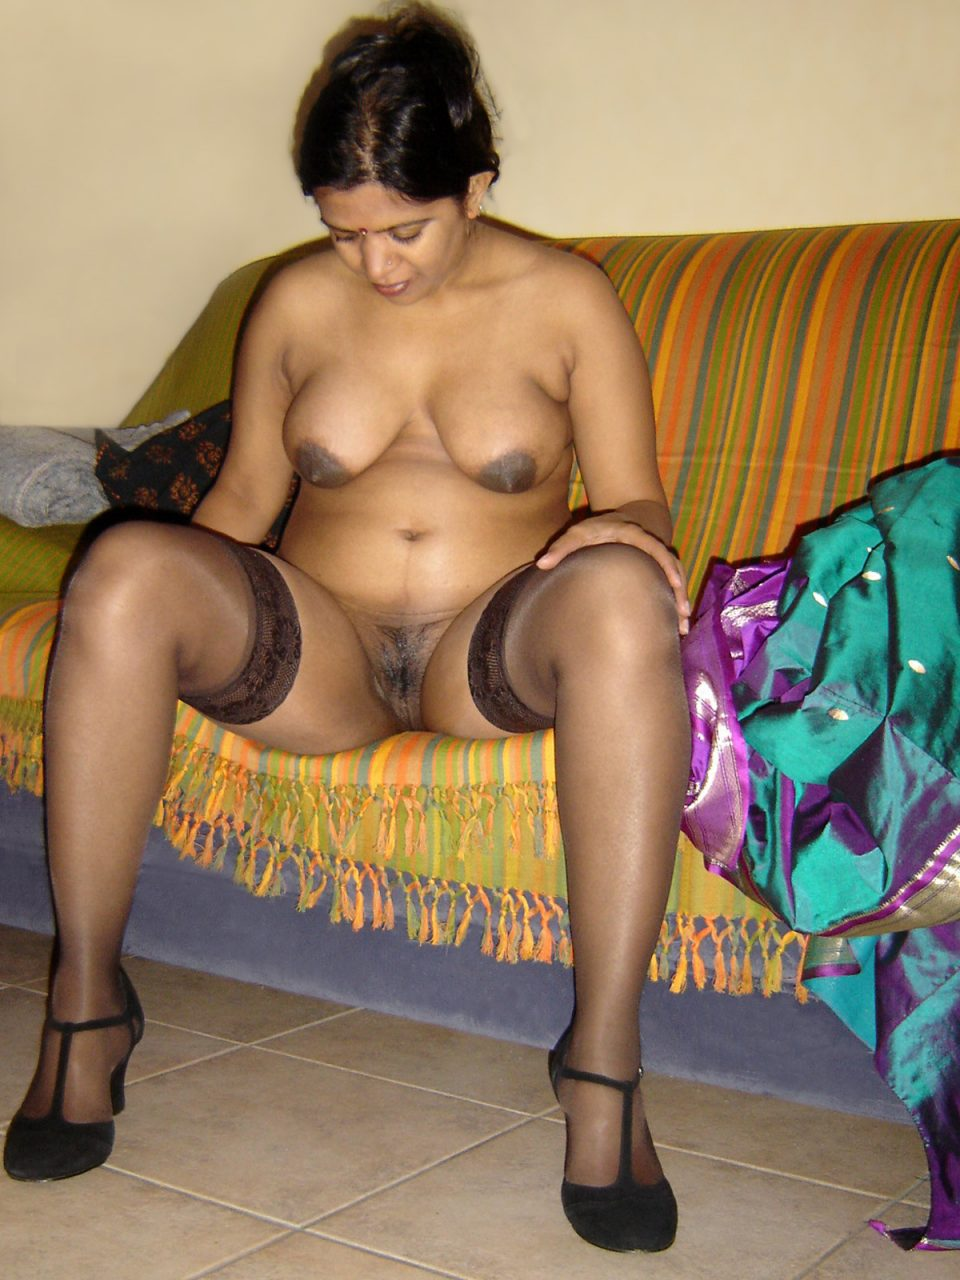 Naked aunties adult pictures that can